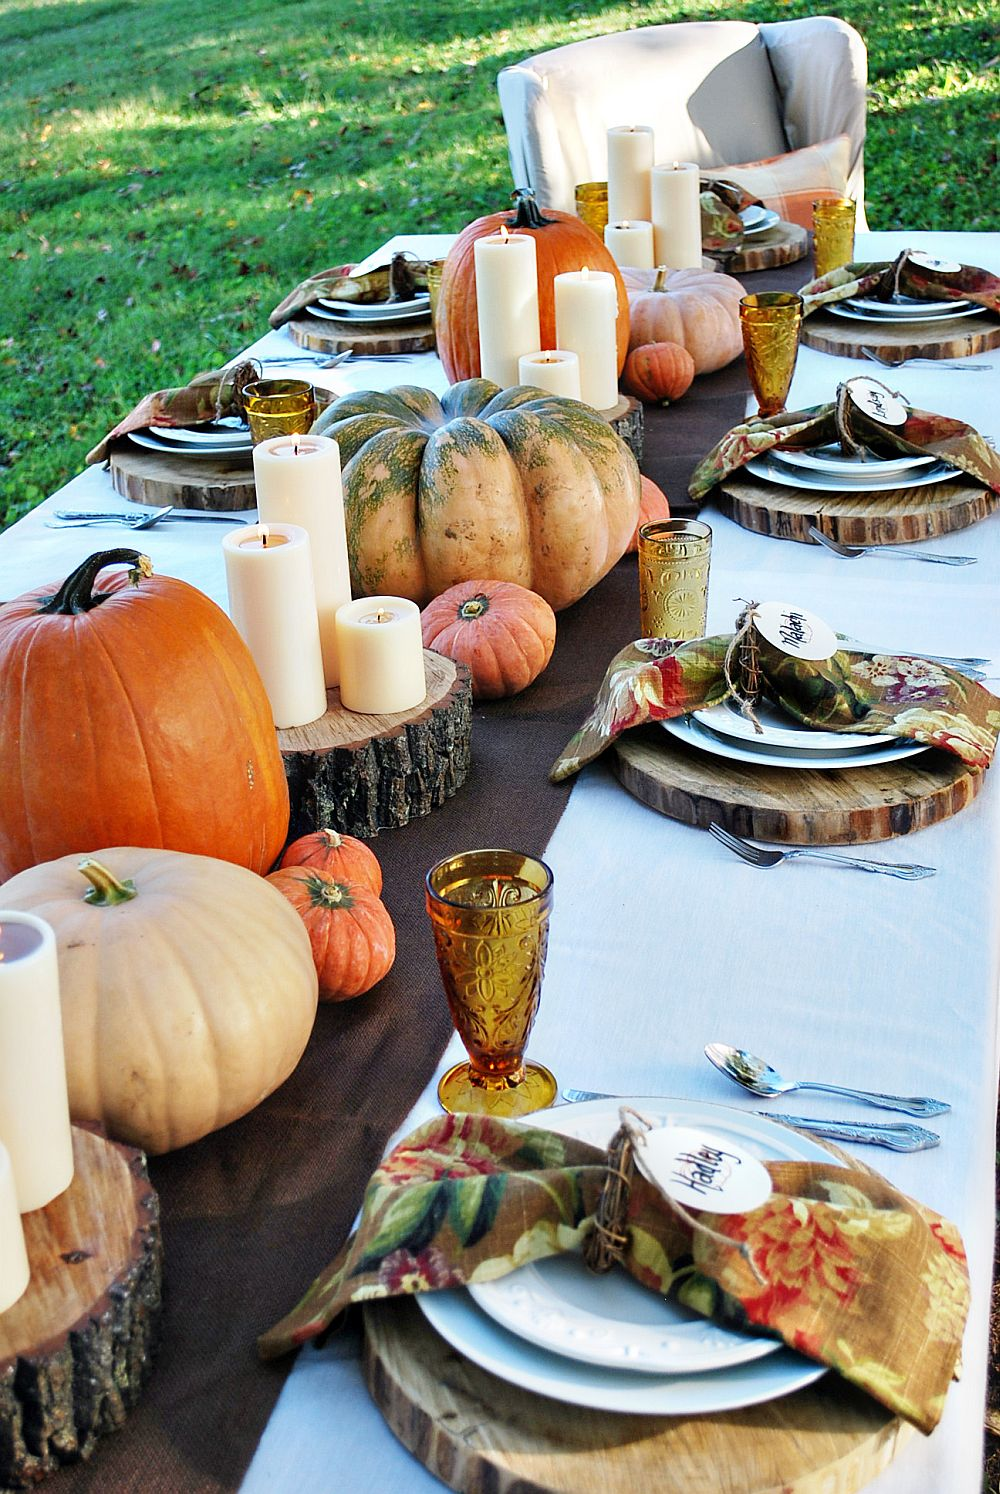 Rustic-Thanksgiving-table-idea-with-an-overload-of-pumpkins